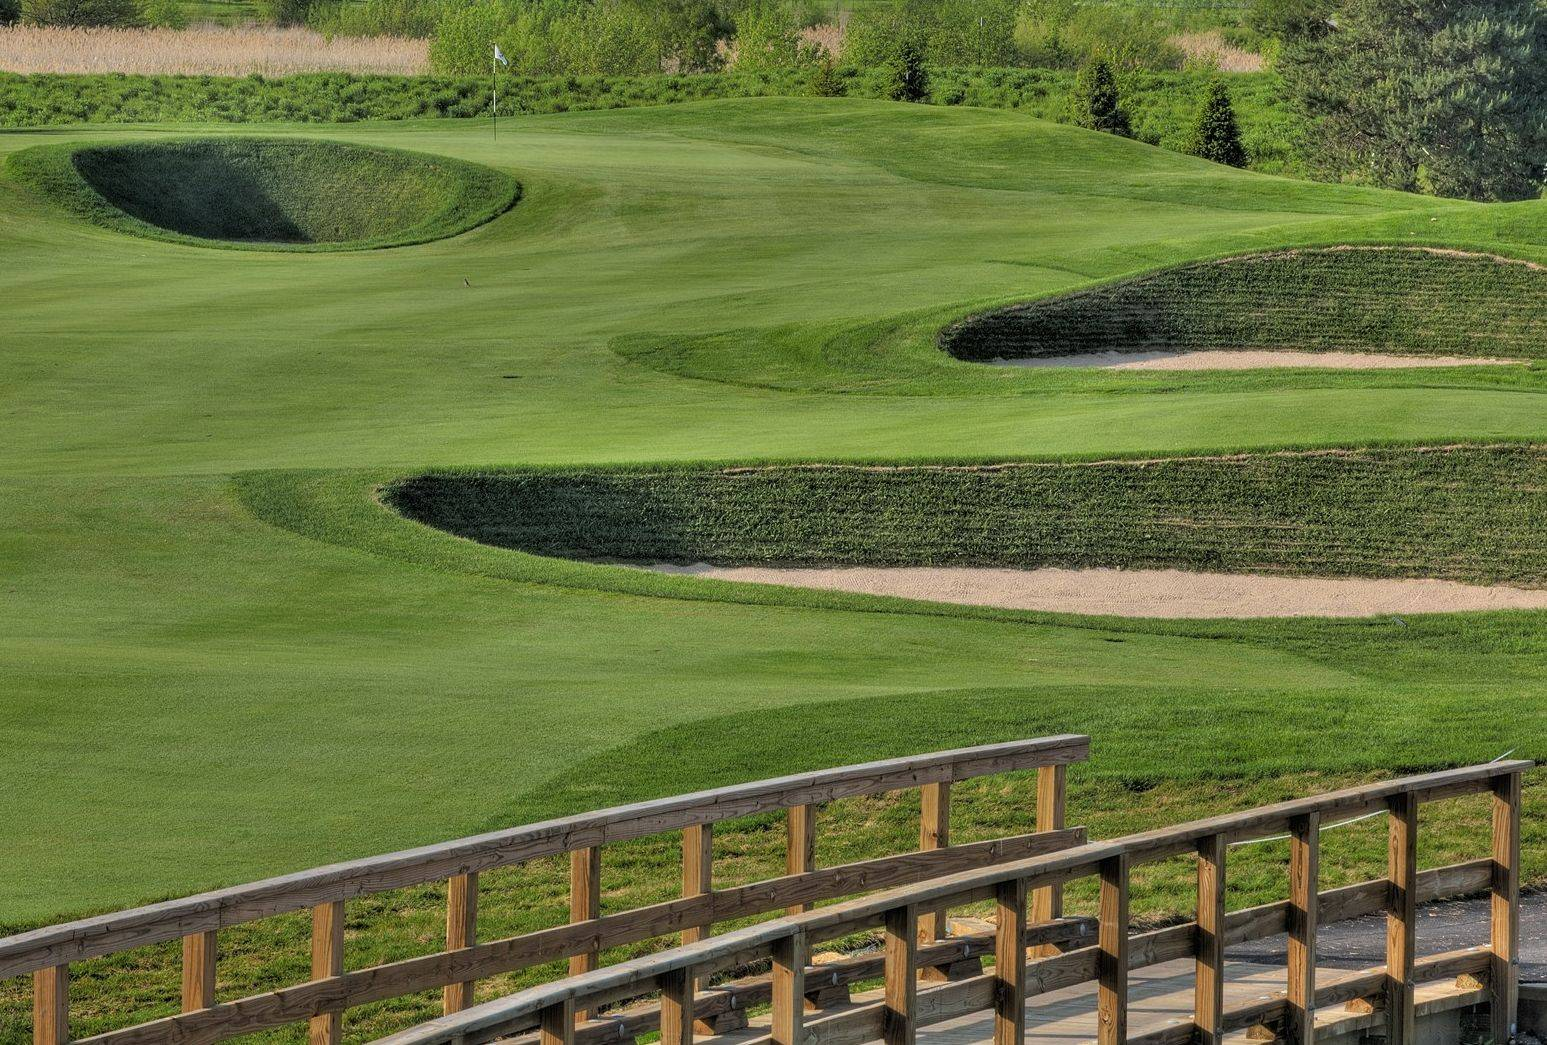 Mistwood's sod bunkers offer unique perspective